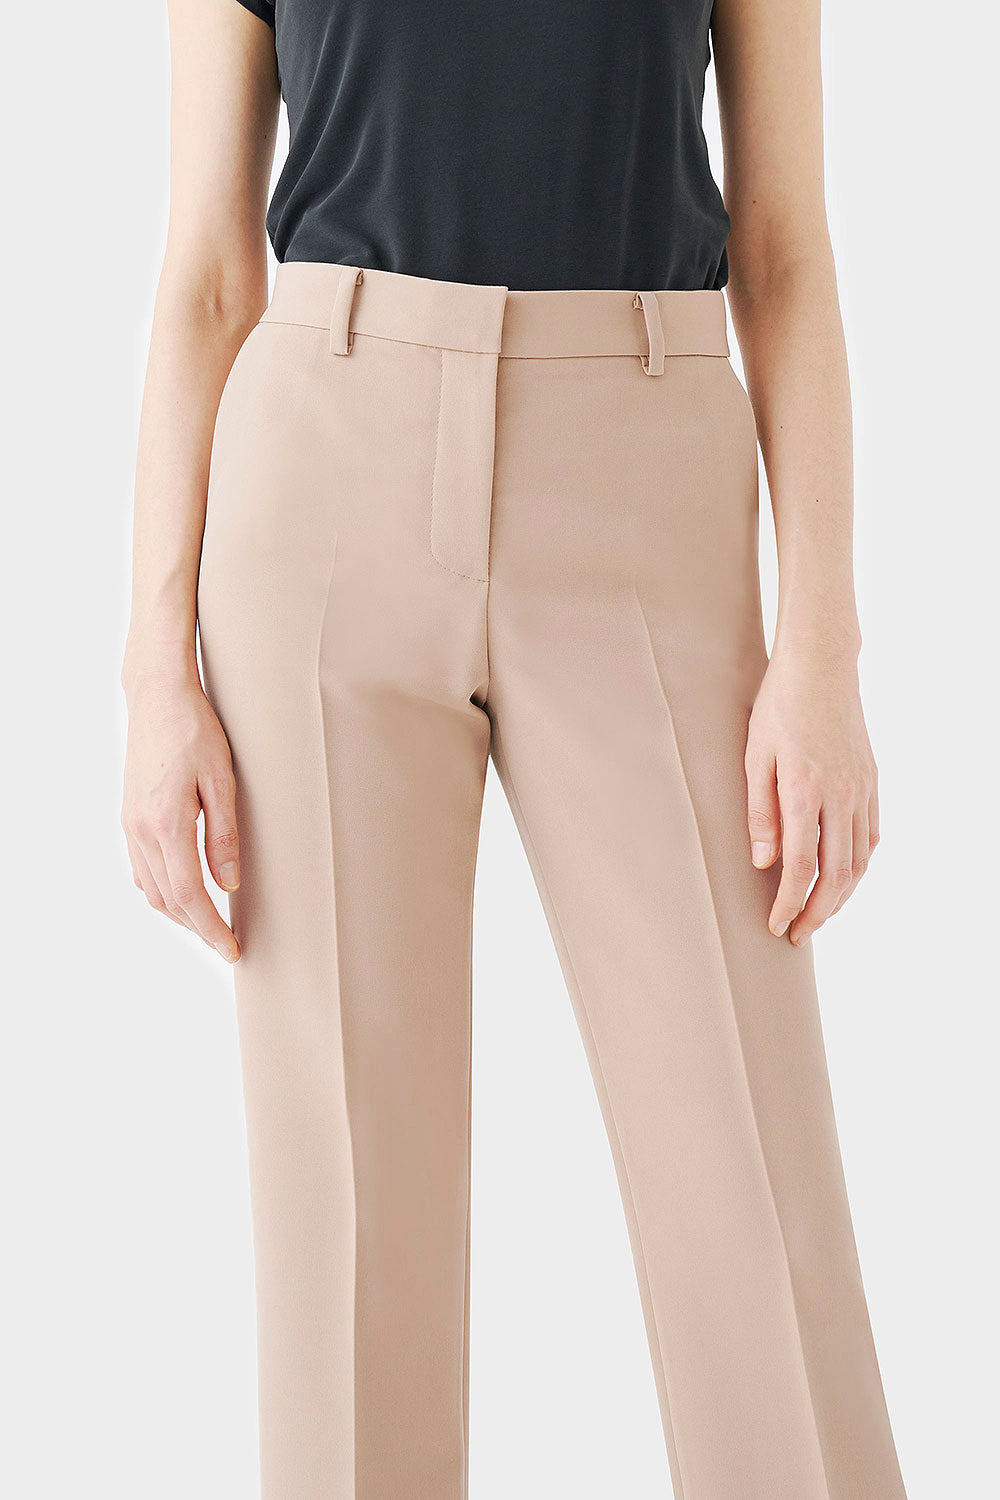 BEIGE POSIE STRETCH HIGHRISE PANTS